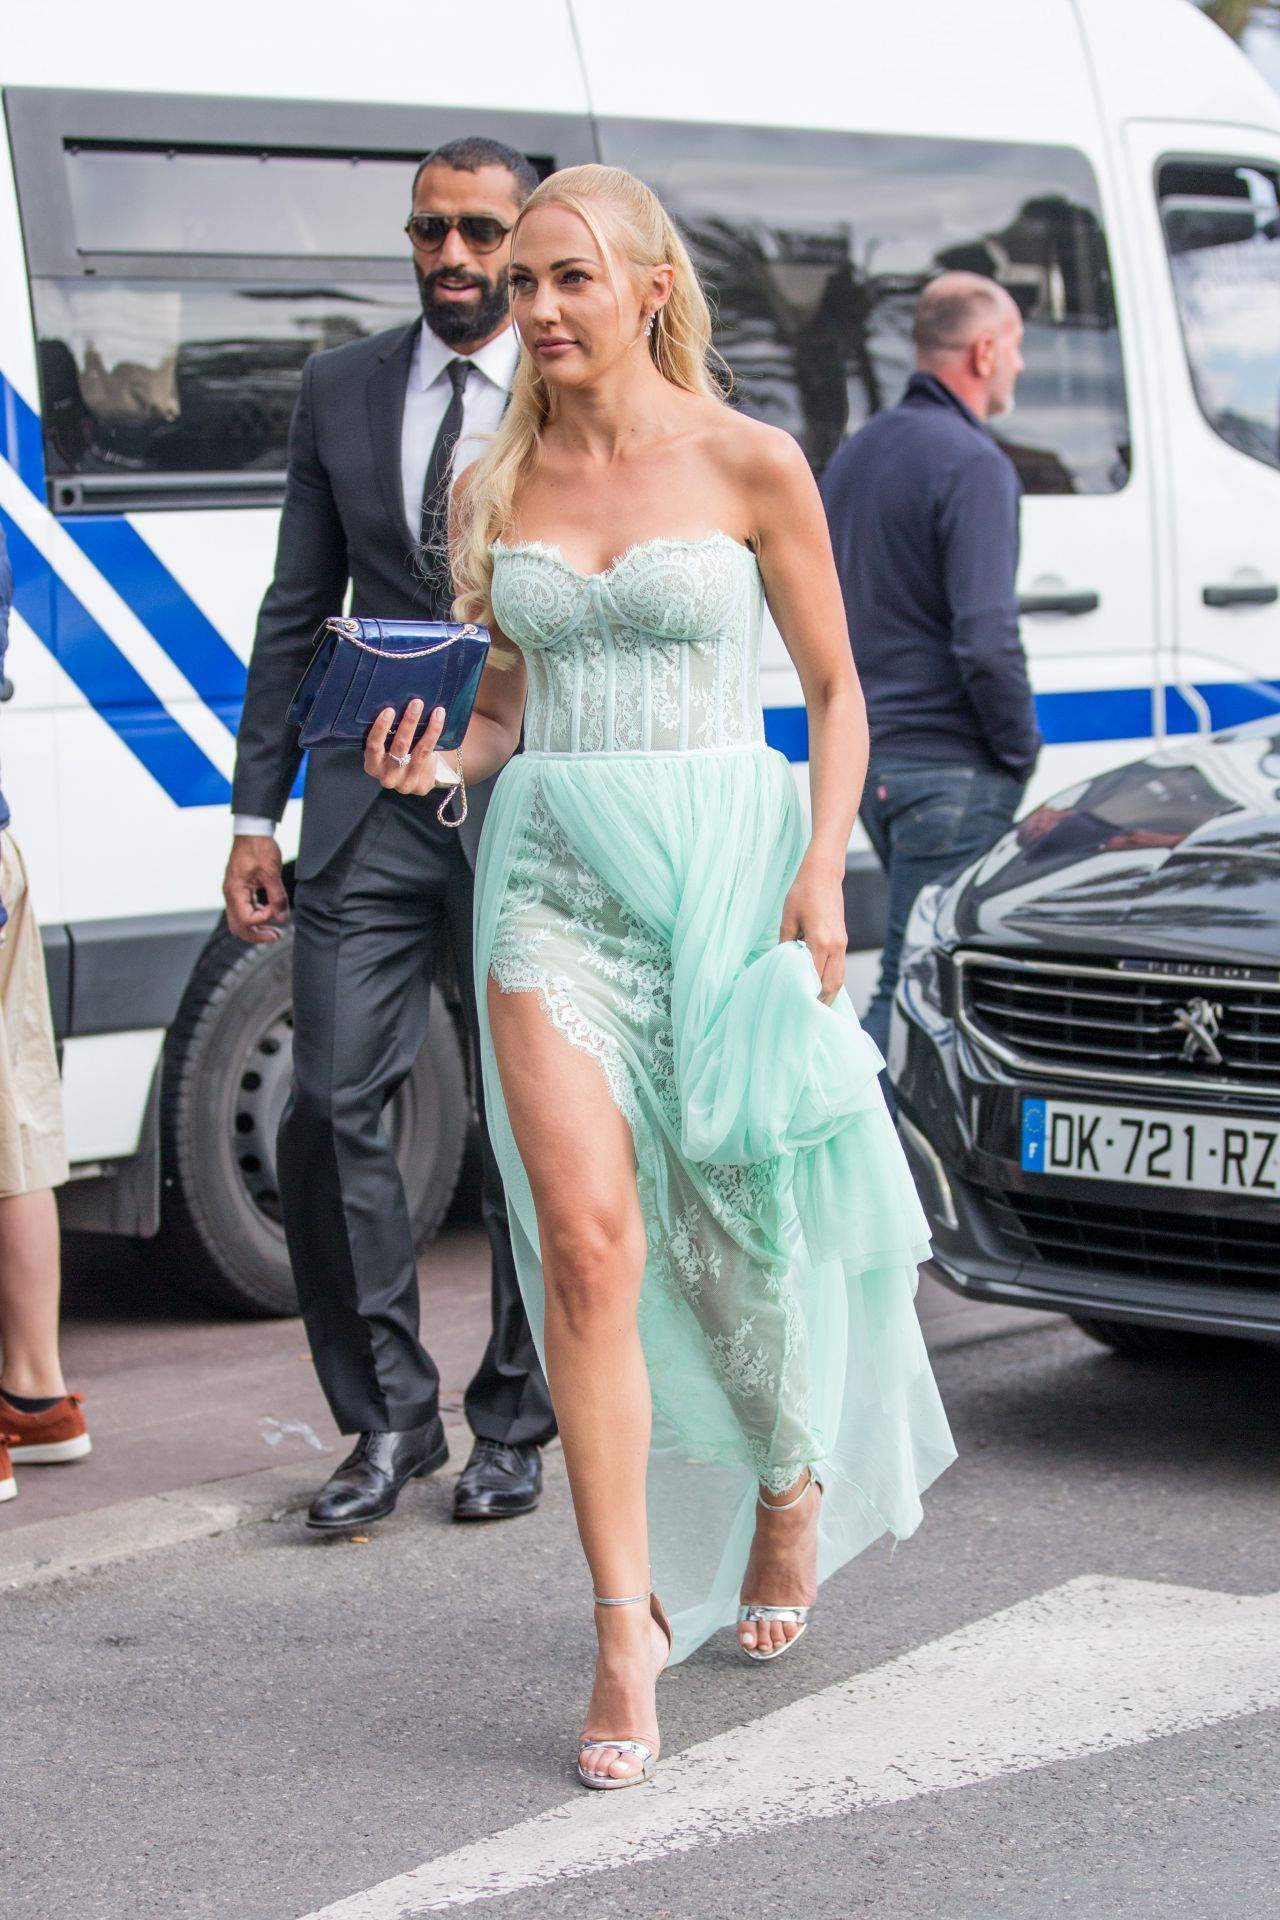 http://celebmafia.com/wp-content/uploads/2018/05/meryem-uzerli-at-the-martinez-hotel-in-cannes-05-13-2018-3.jpg